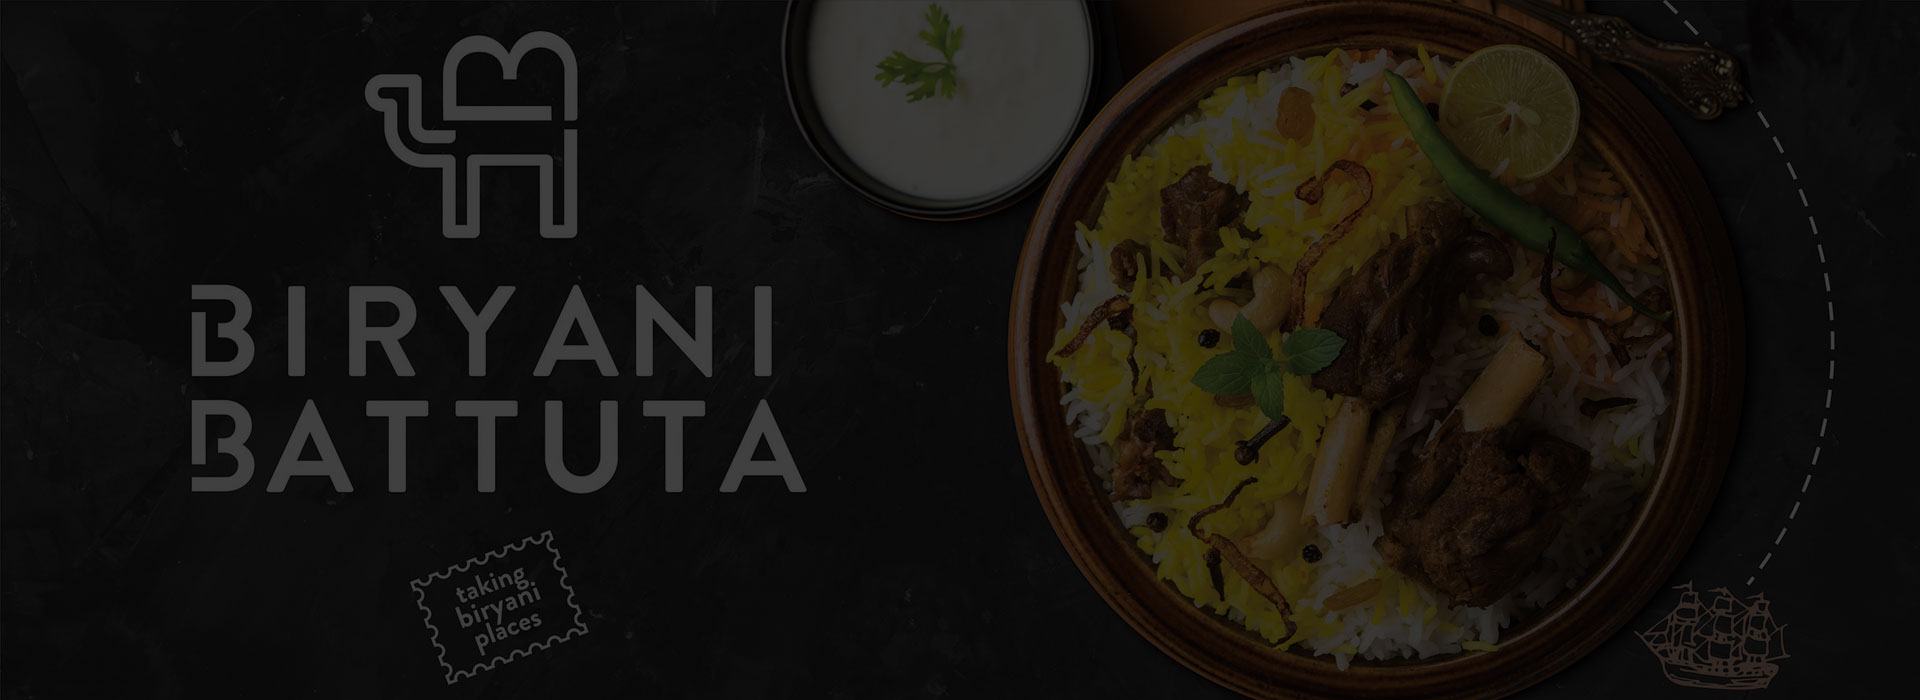 Launched Biryani Battuta with flavours from around the world.